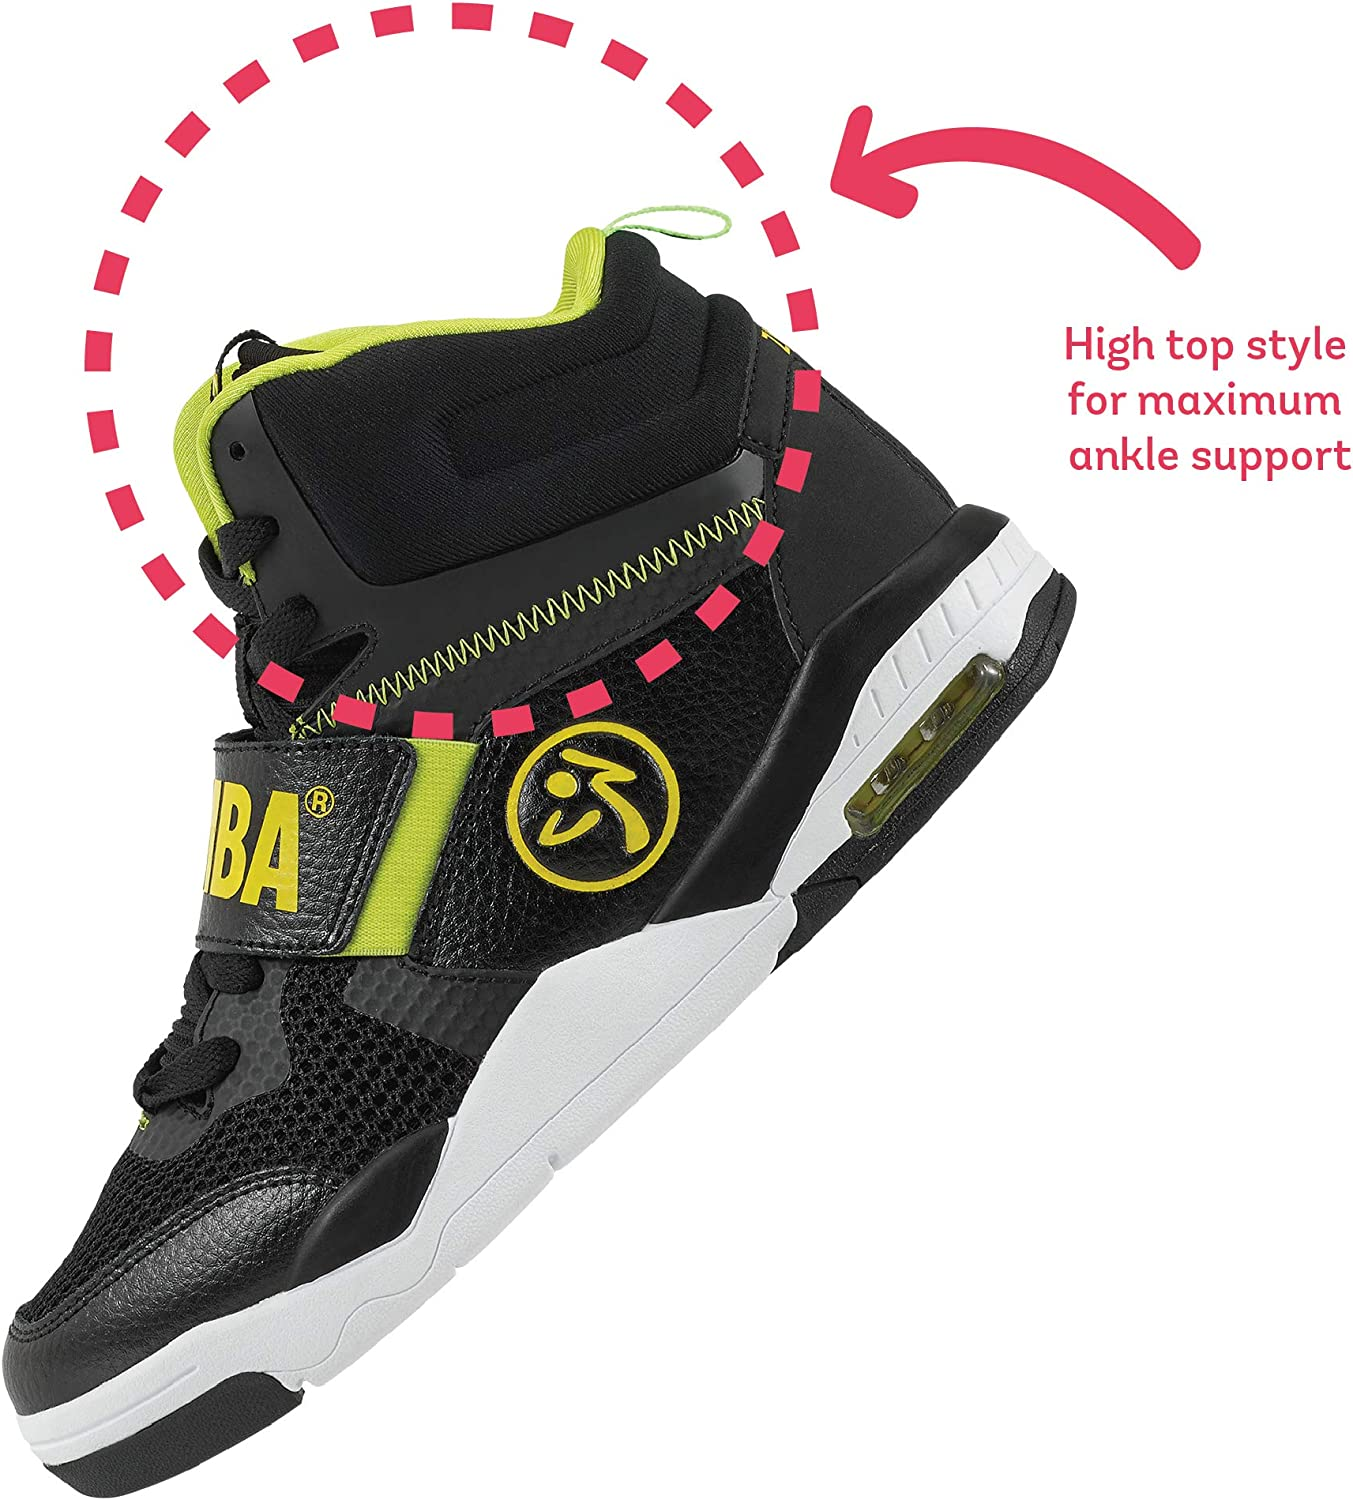 Zumba Air Classic Remix High Top Fitness Workout Dance Shoes for Women Black 1 IJUudw